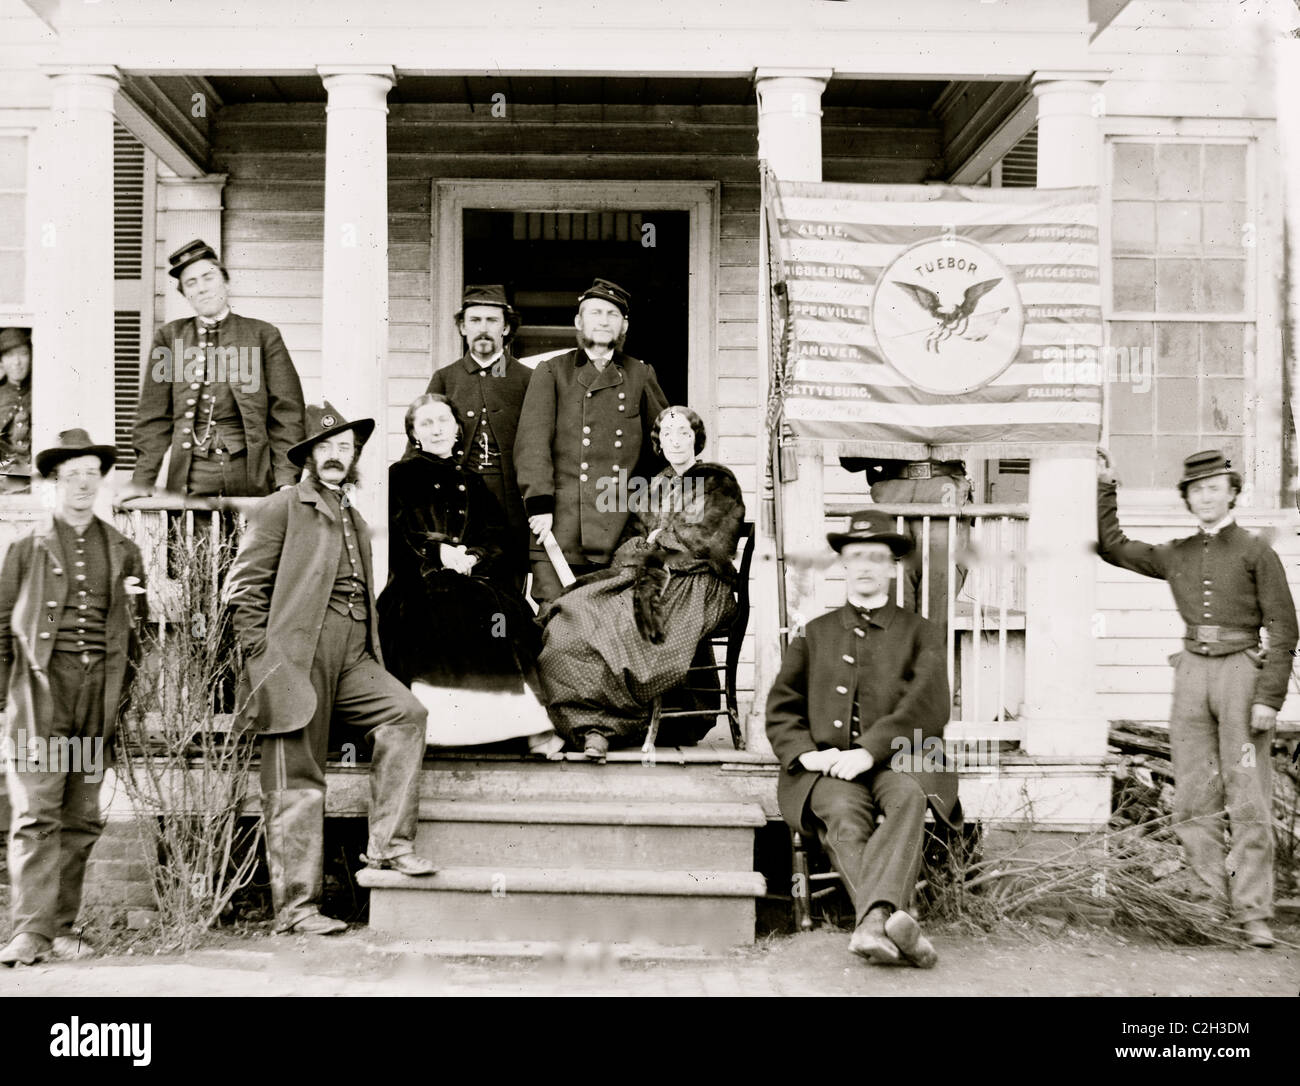 Stevensburg, Va. Gen. Judson Kilpatrick, 3d Division, Cavalry Corps, with ladies and staff members on the porch - Stock Image